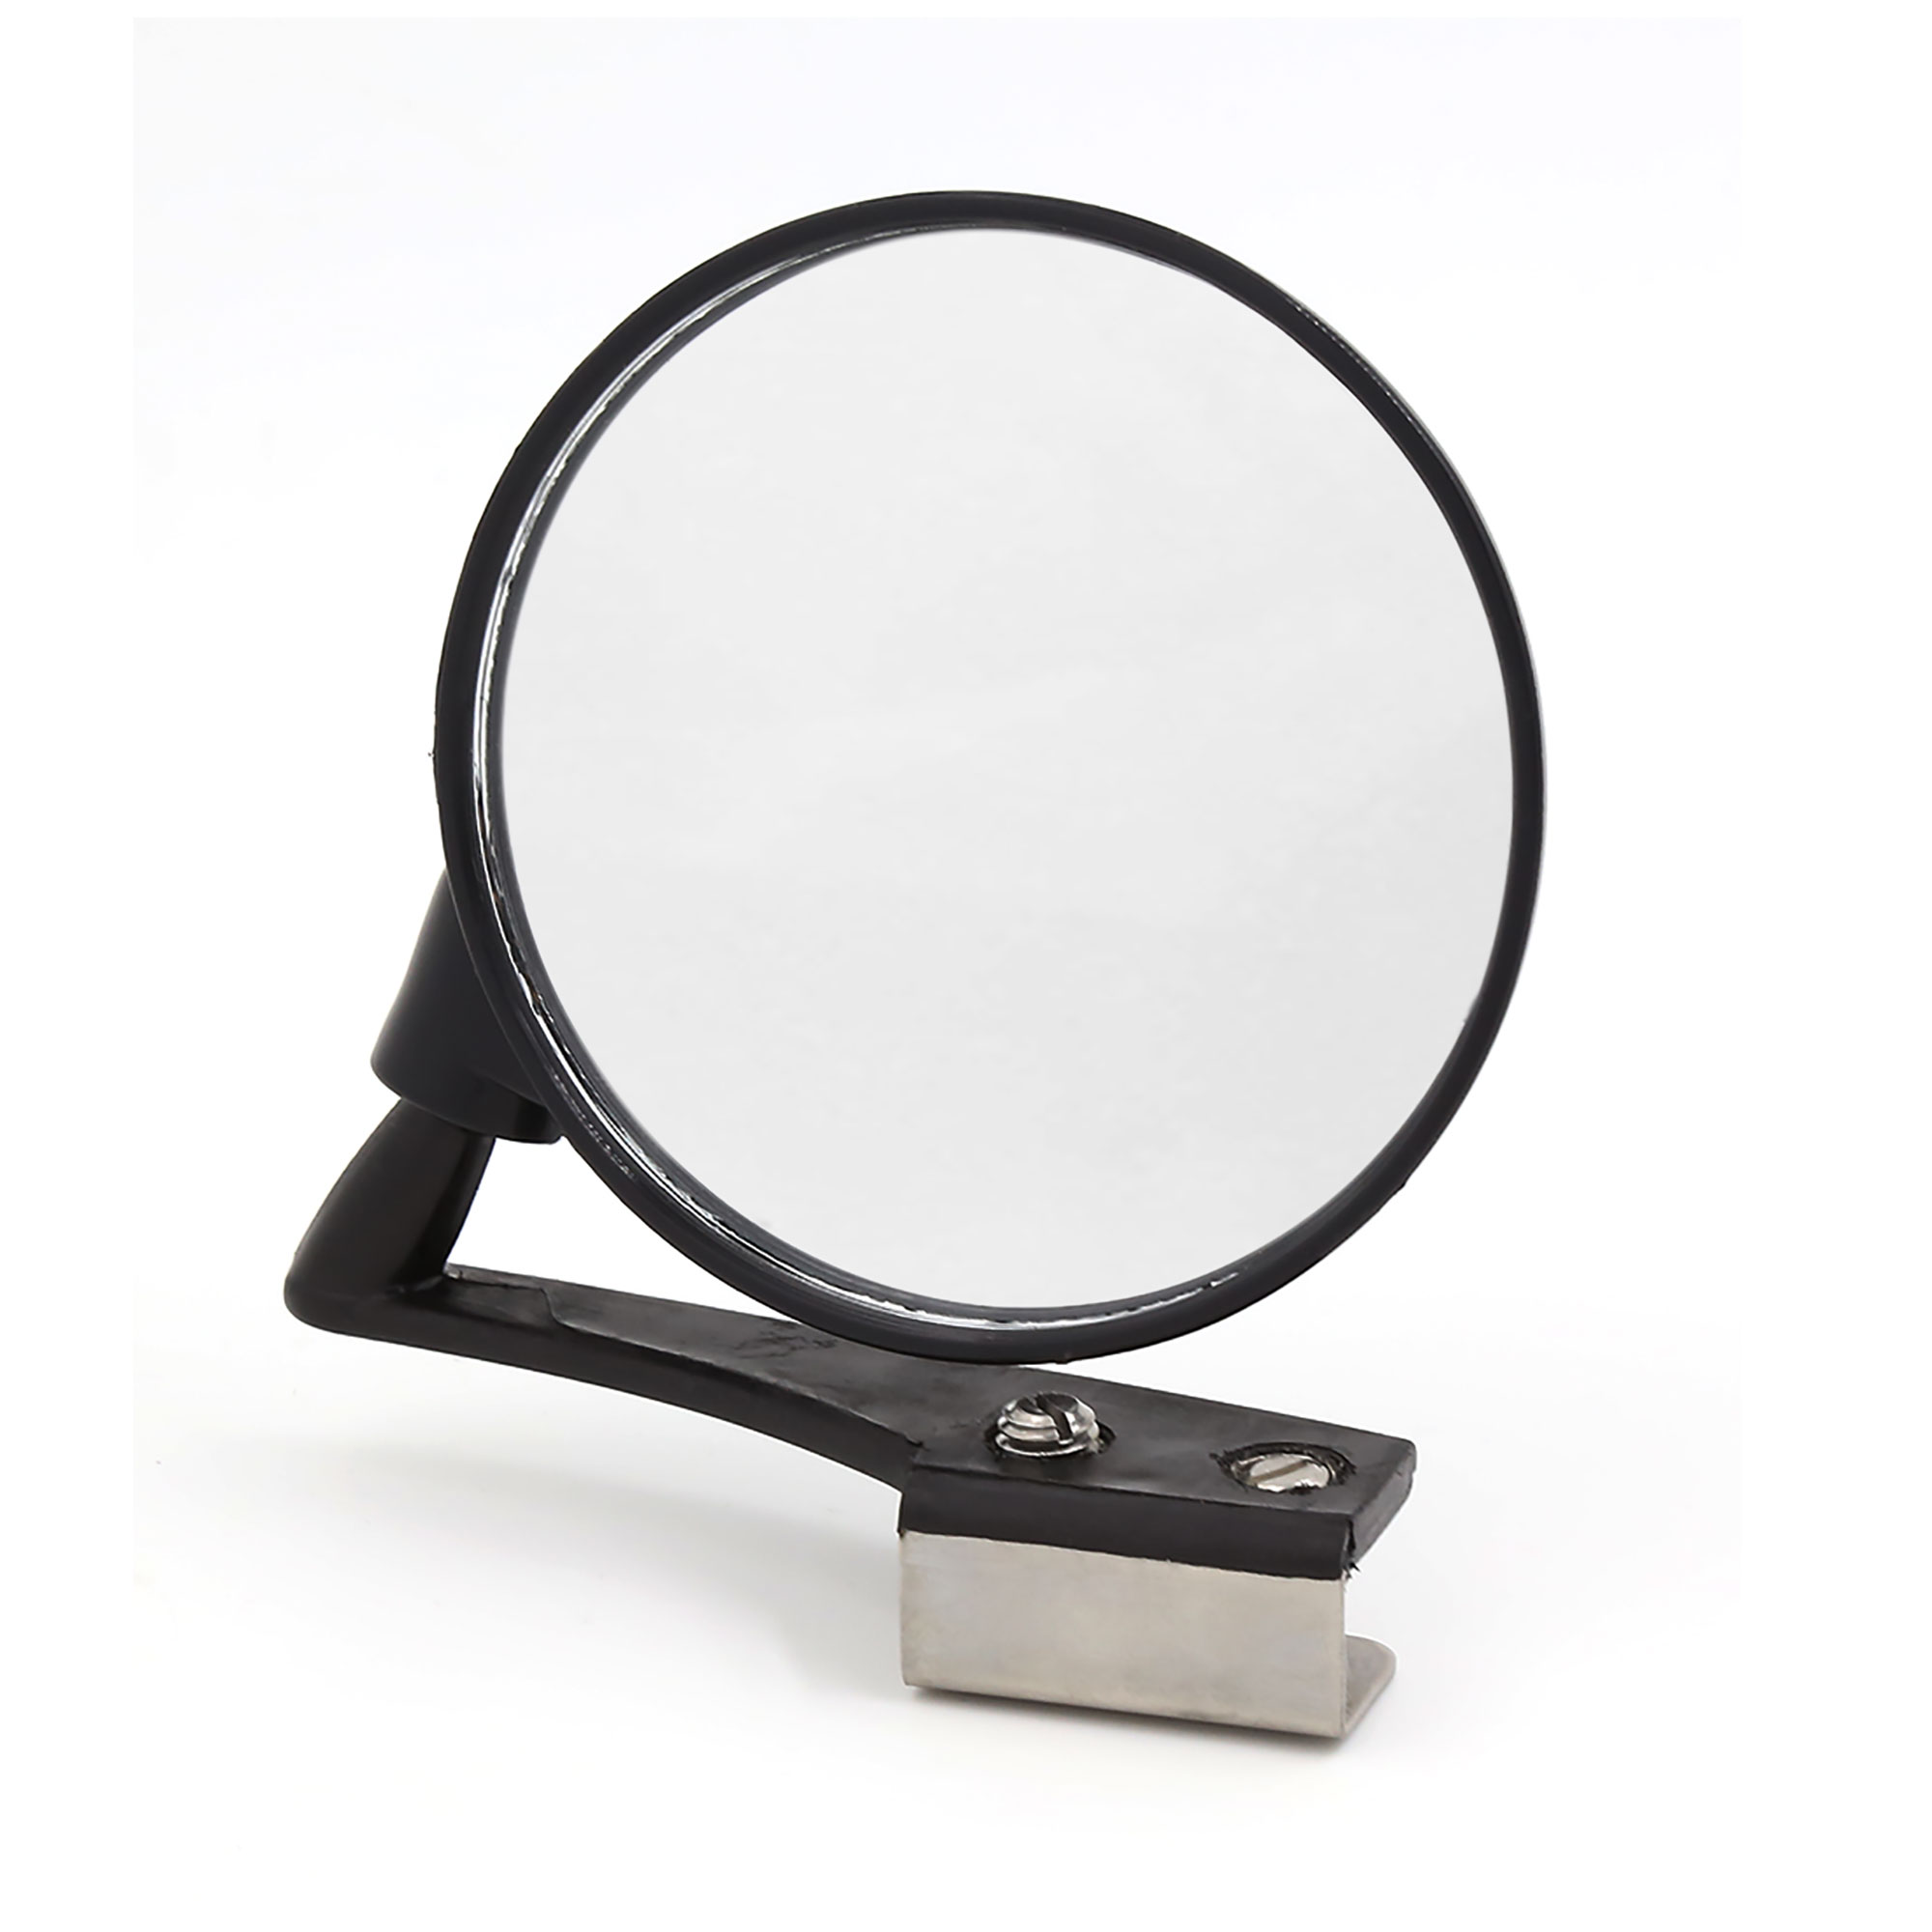 Universal Wide Angle Convex Blind Spot Front Left Rear View Mirror Black for Car